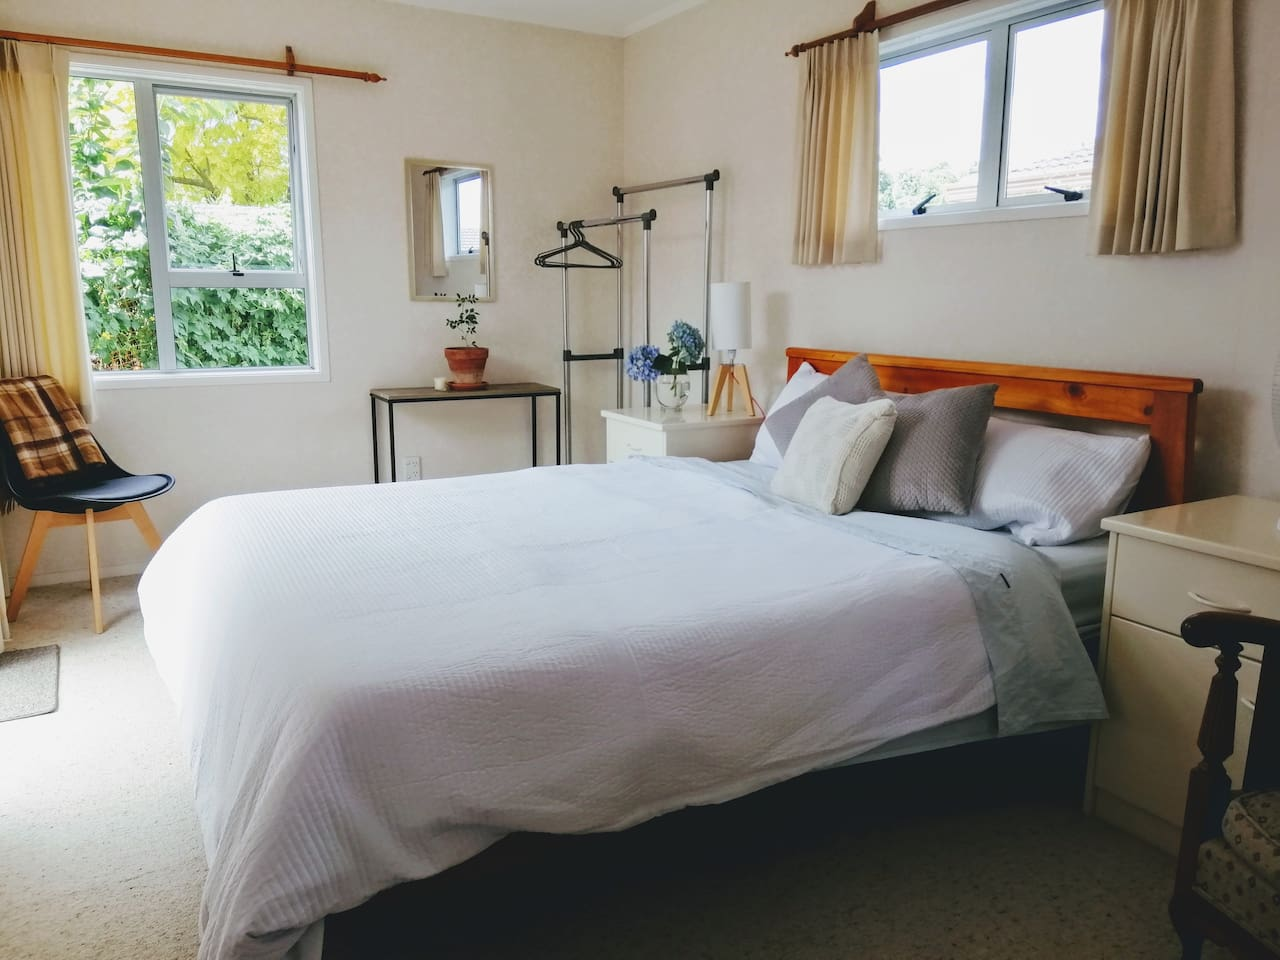 Spacious queen bed in a pleasant sunlit room with a freestanding wardrobe